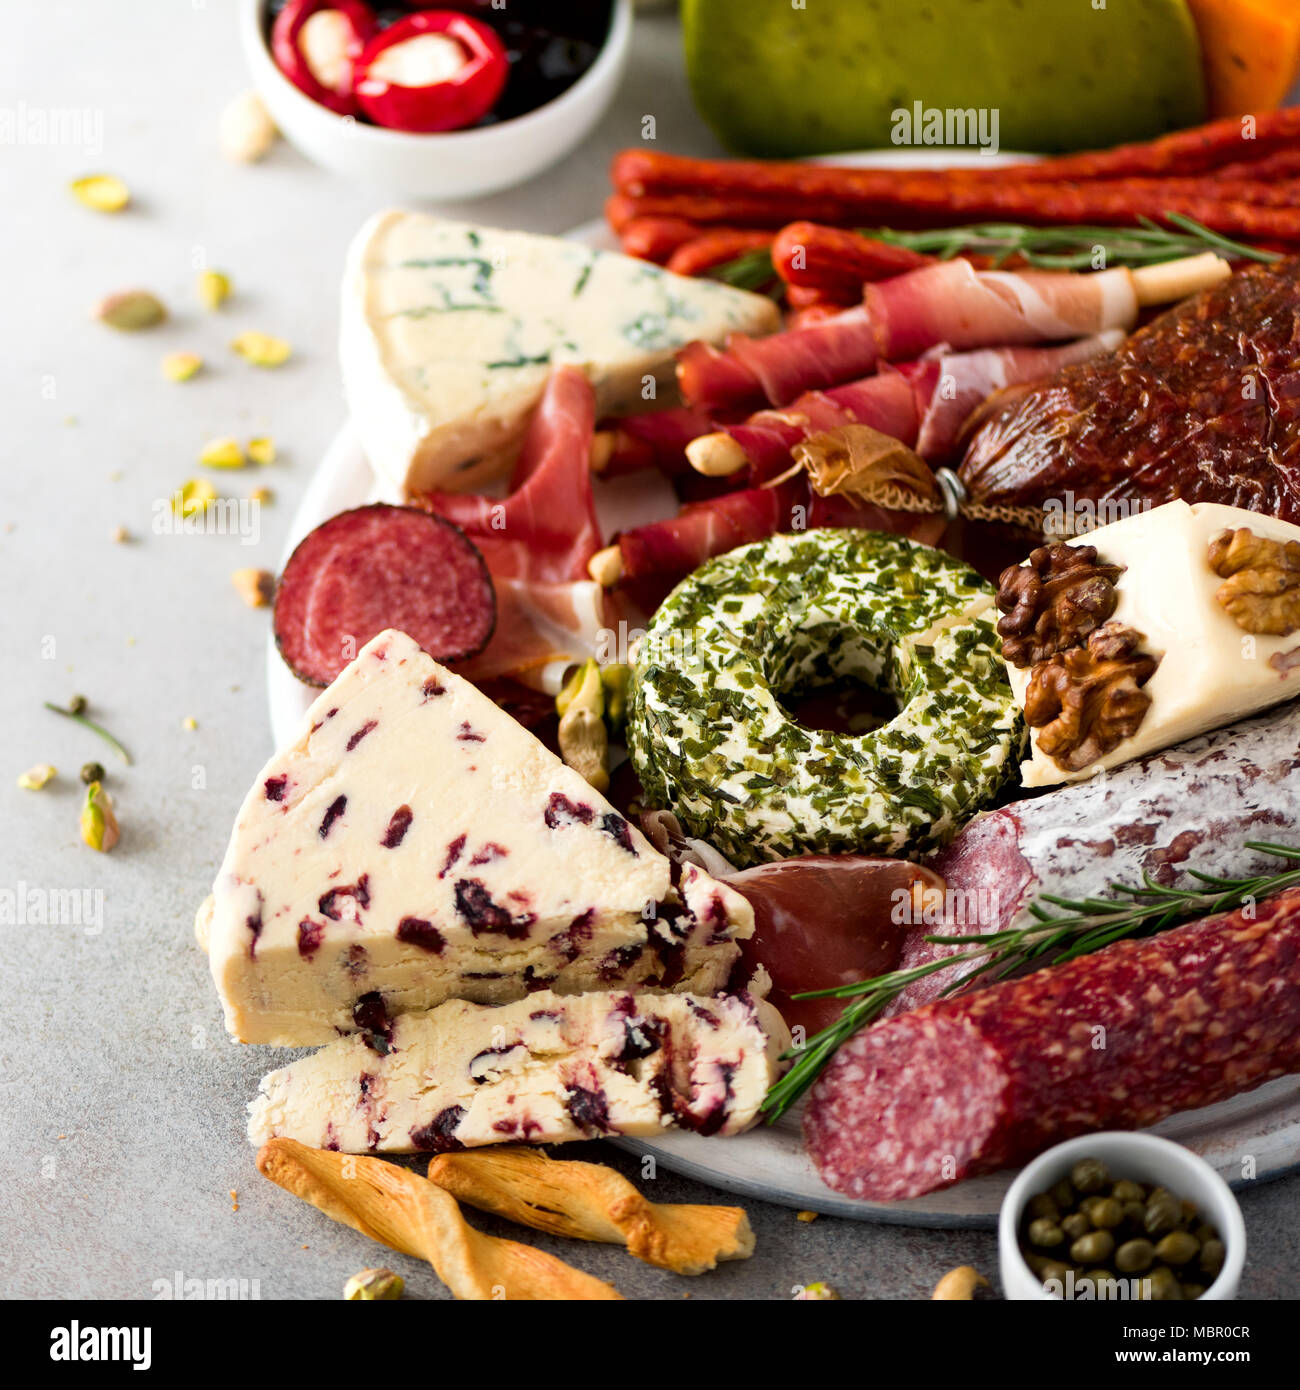 Traditional italian antipasto, cutting board with salami, cold smoked meat, prosciutto, ham, cheeses, olives, capers on grey background. Cheese and meat appetizer. Square crop - Stock Image